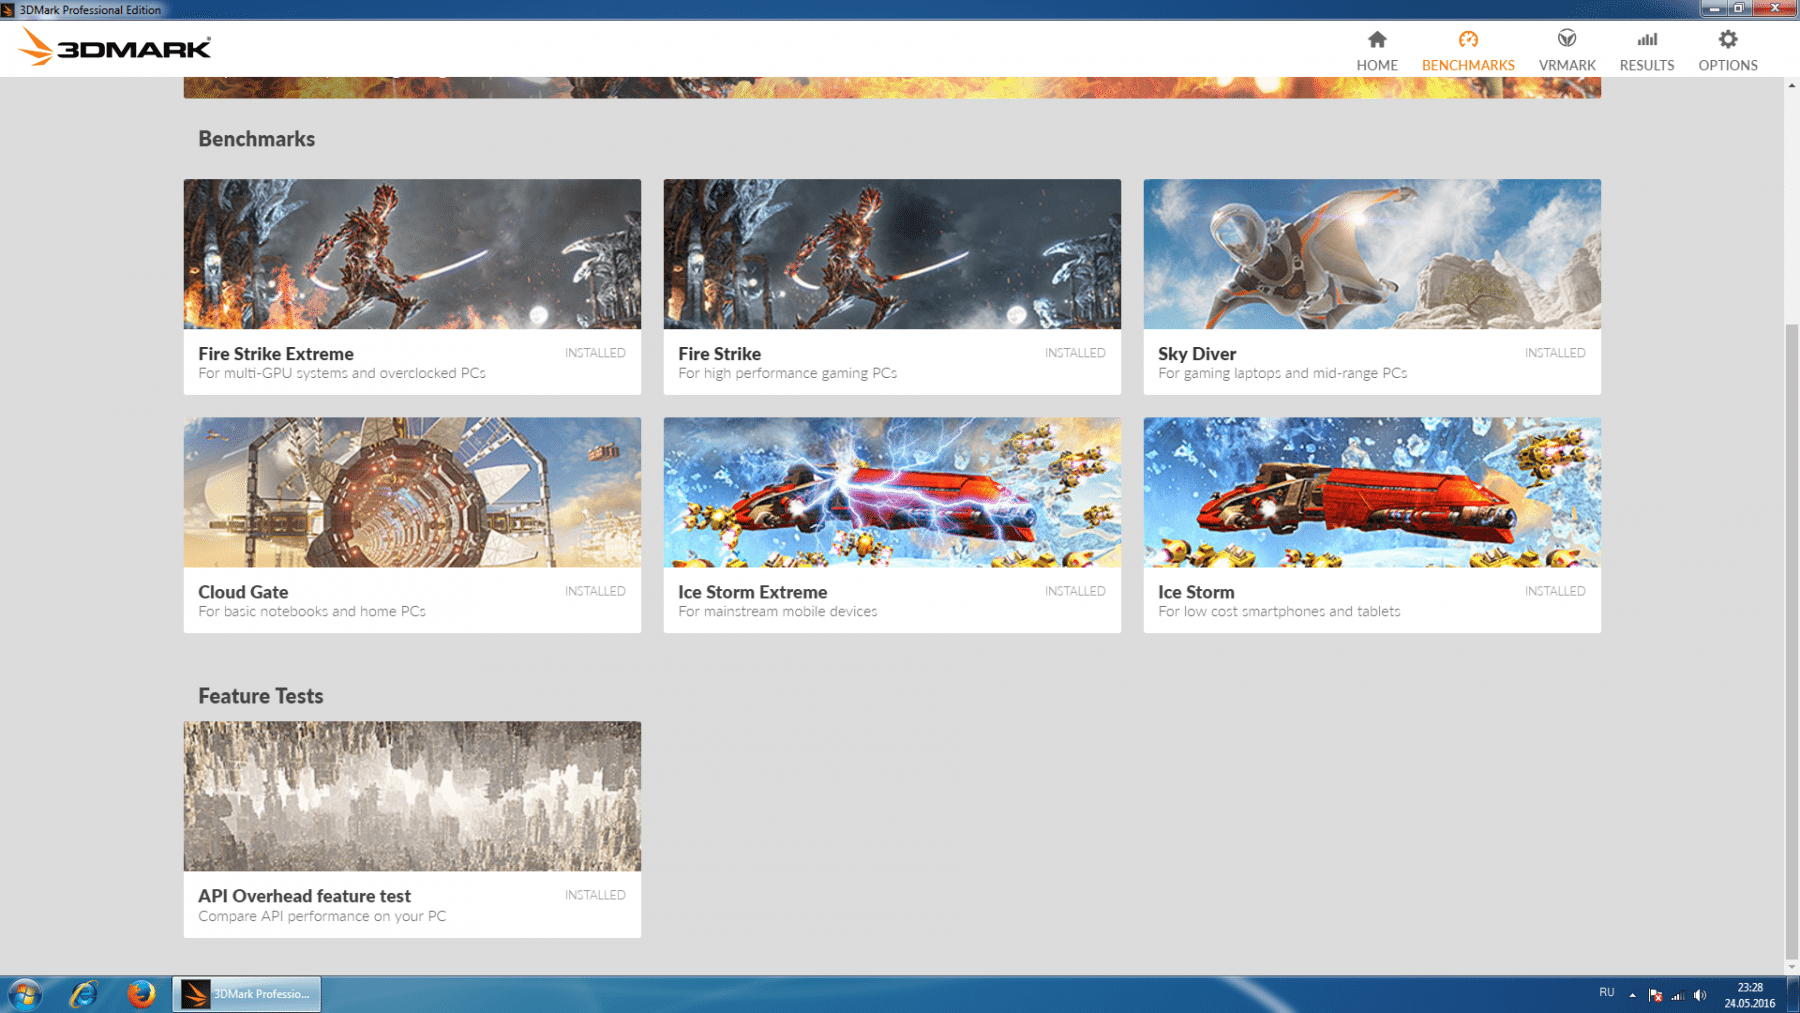 3dmark all tests